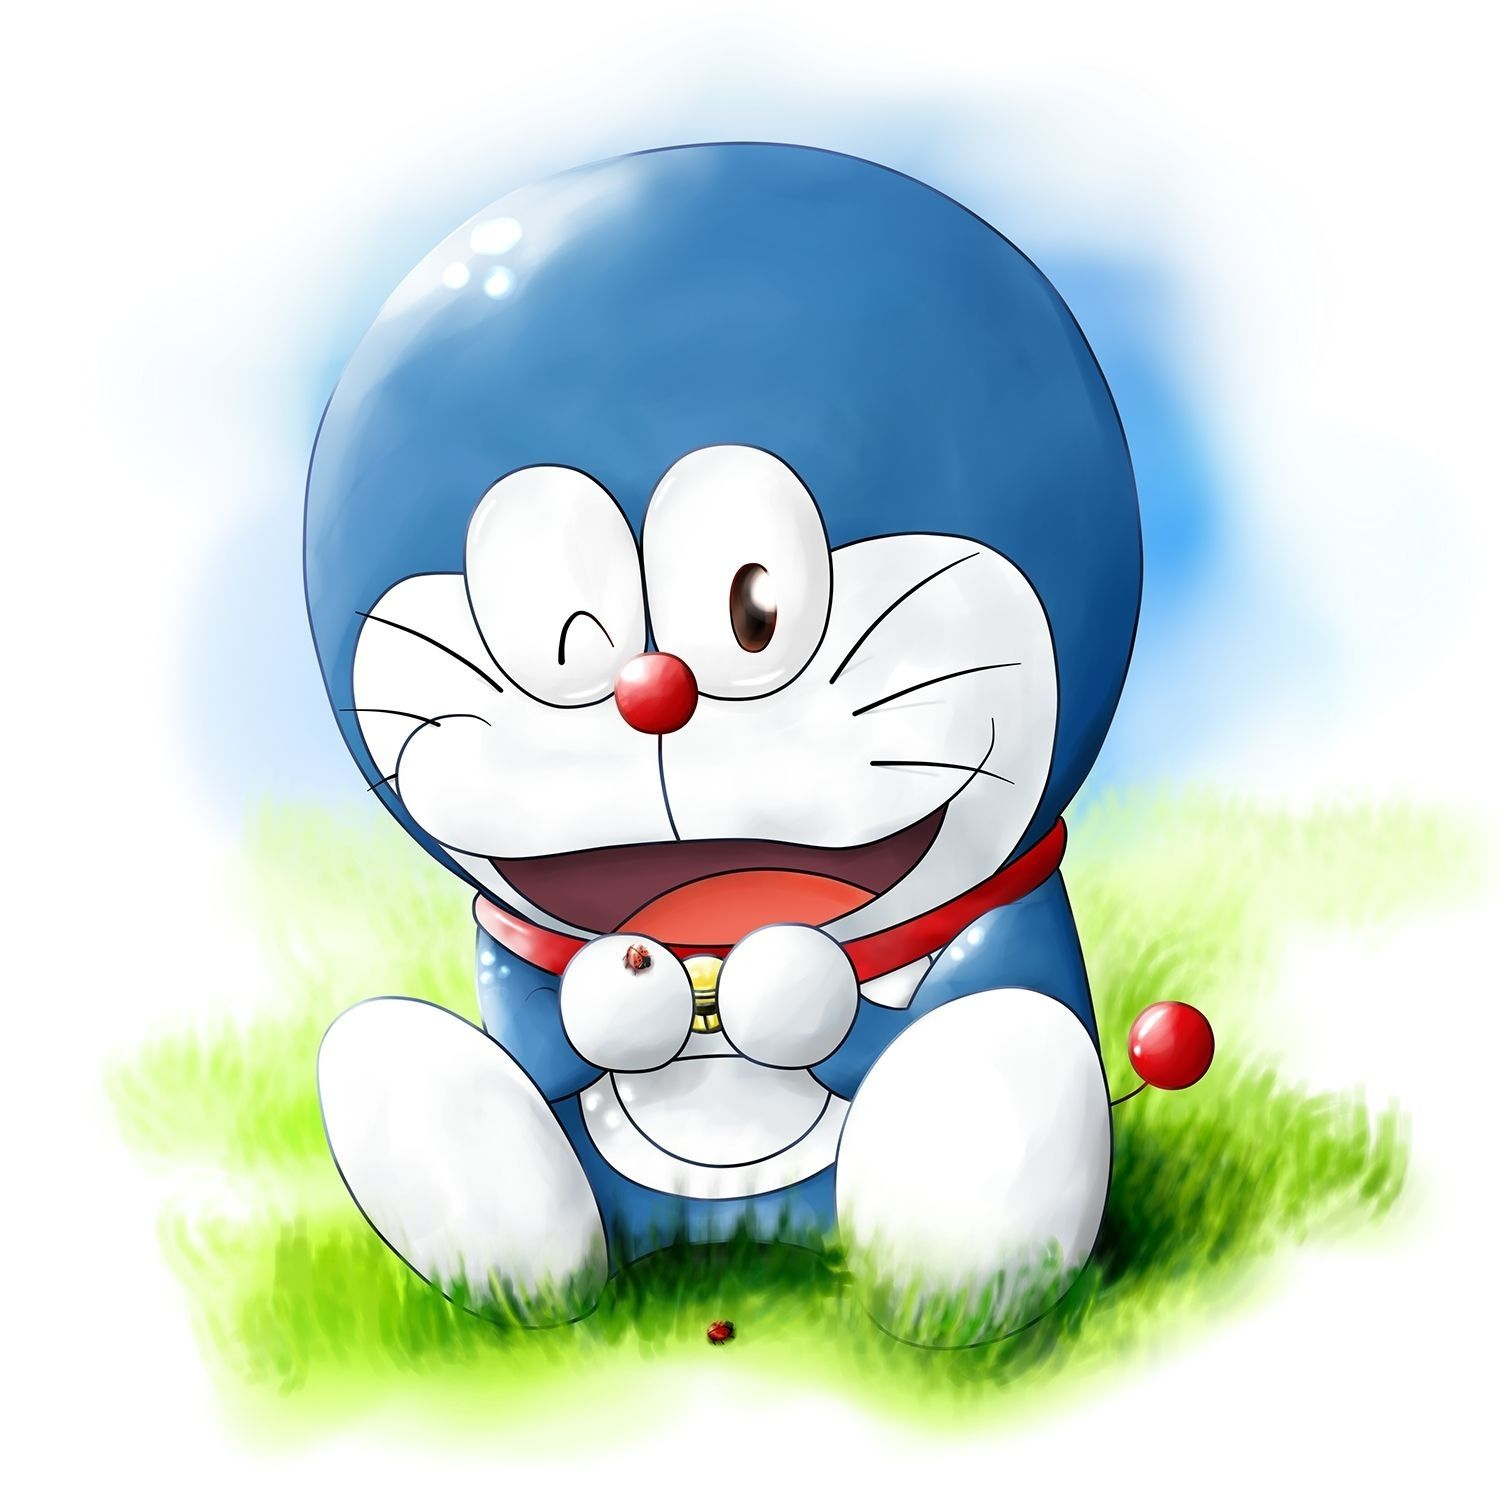 Doraemon Hd Wallpapers Wallpaper Cave With Regard To Doraemon Beautiful Wallpapers In 2020 Doraemon Wallpapers Cartoon Wallpaper Doraemon